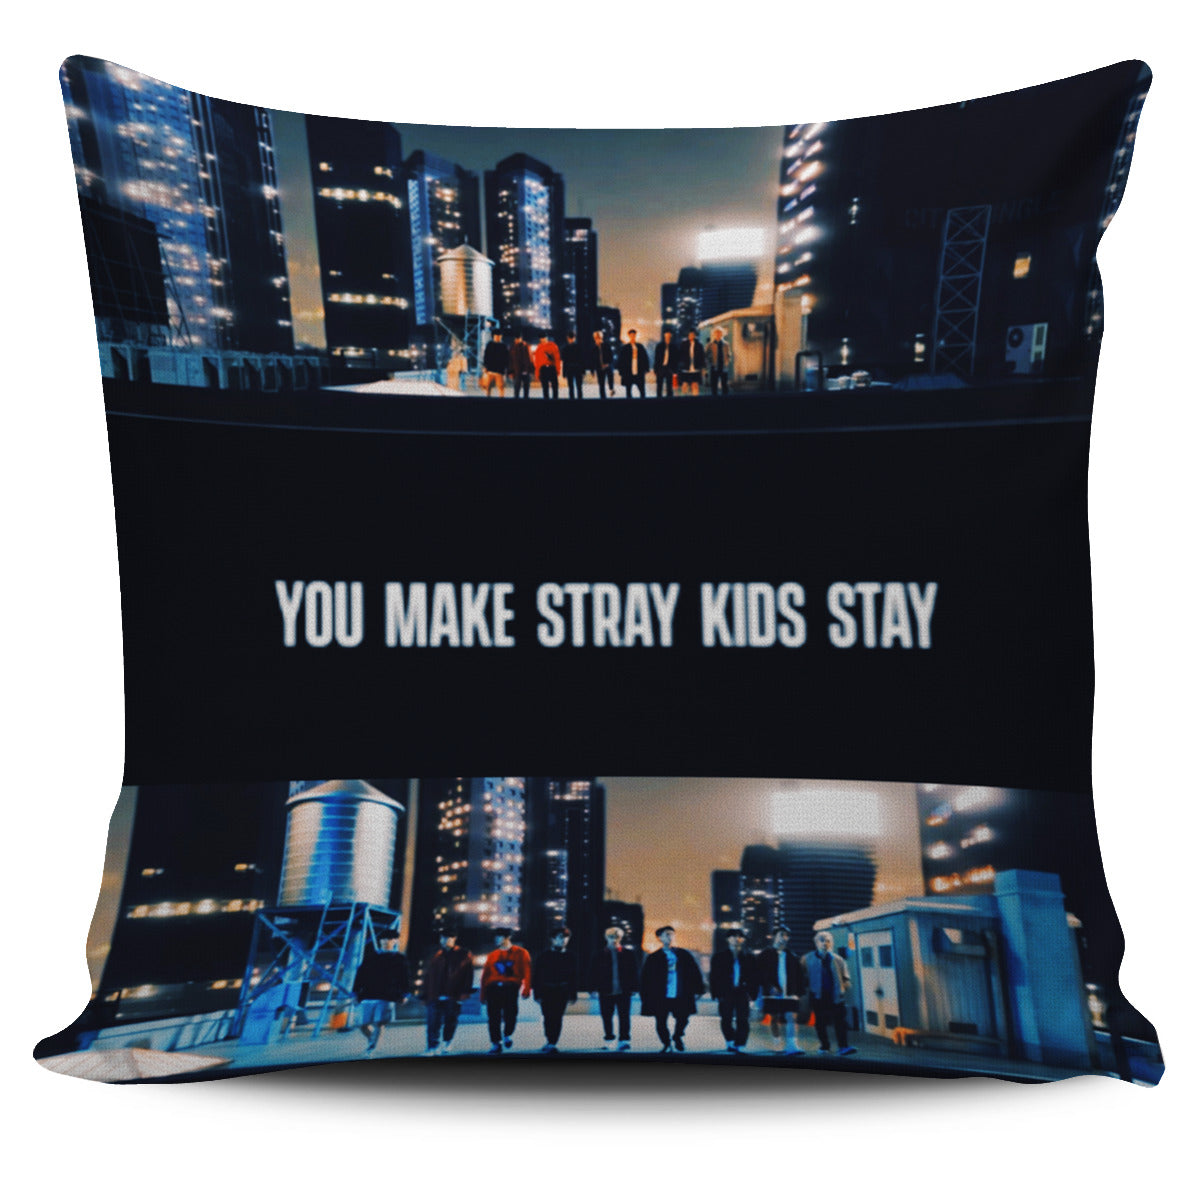 You Make Stray Kids Stay Pillow Case